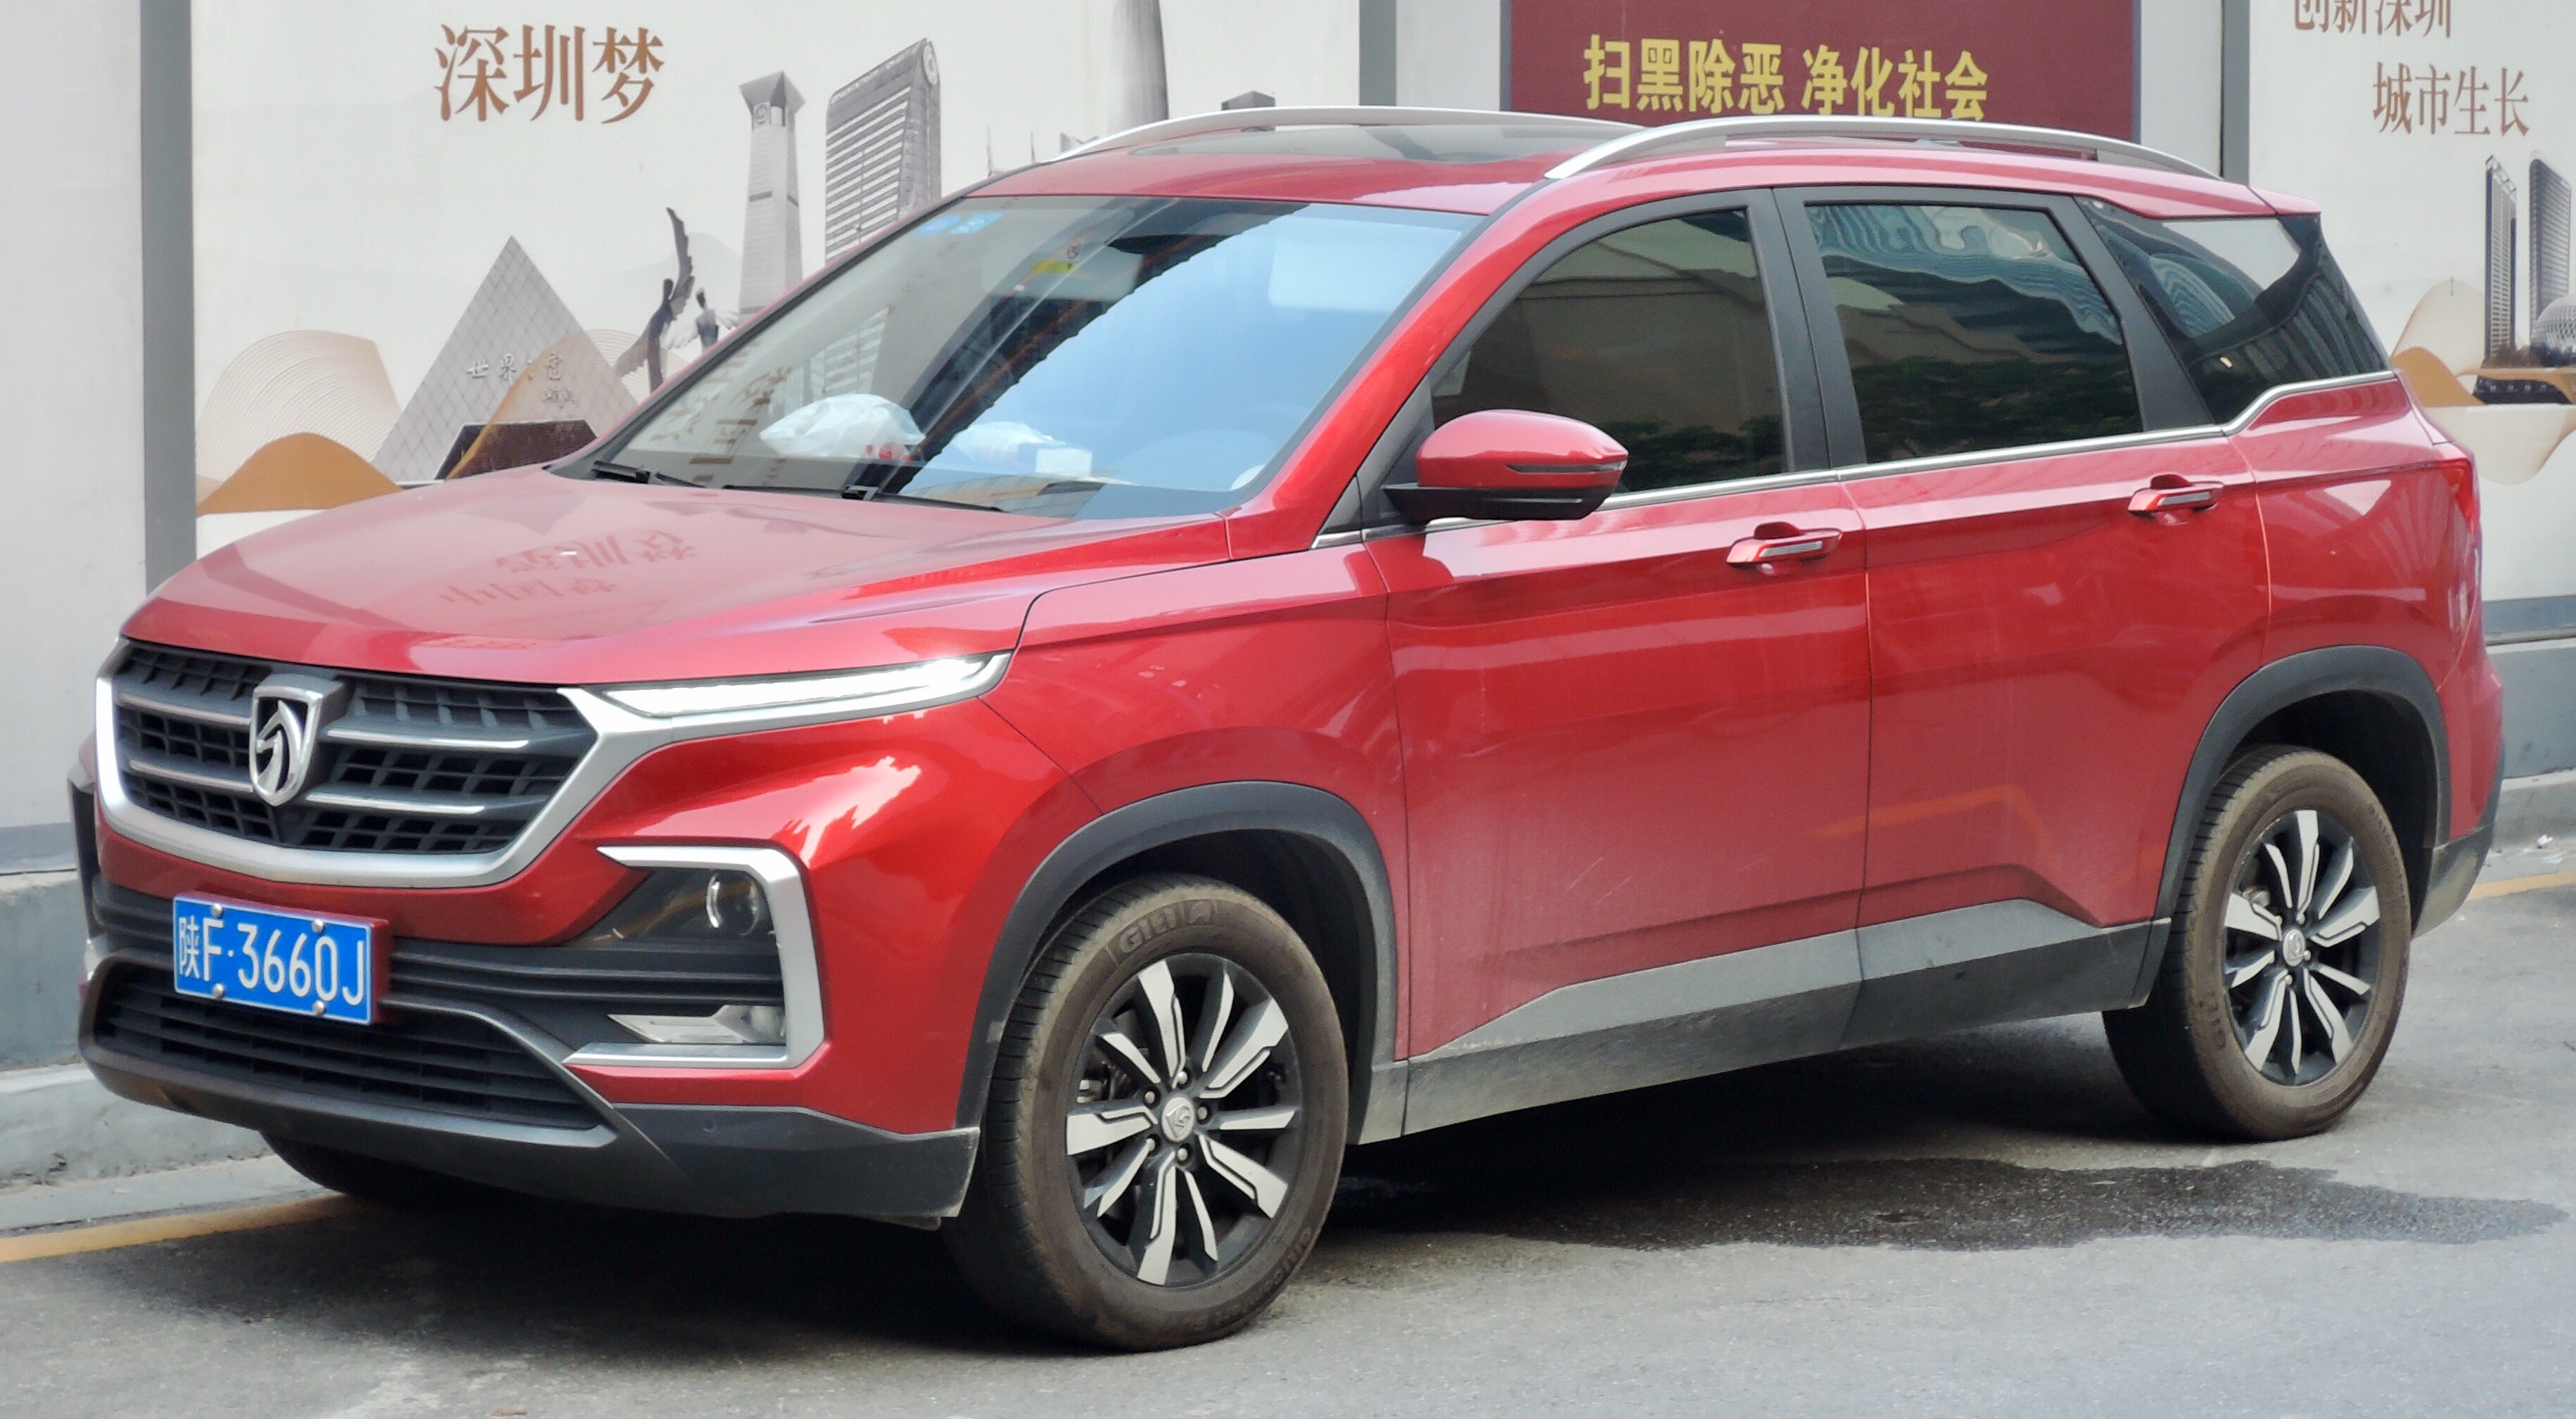 2019 Chevy Captiva Might Come Back >> Baojun 530 Wikipedia